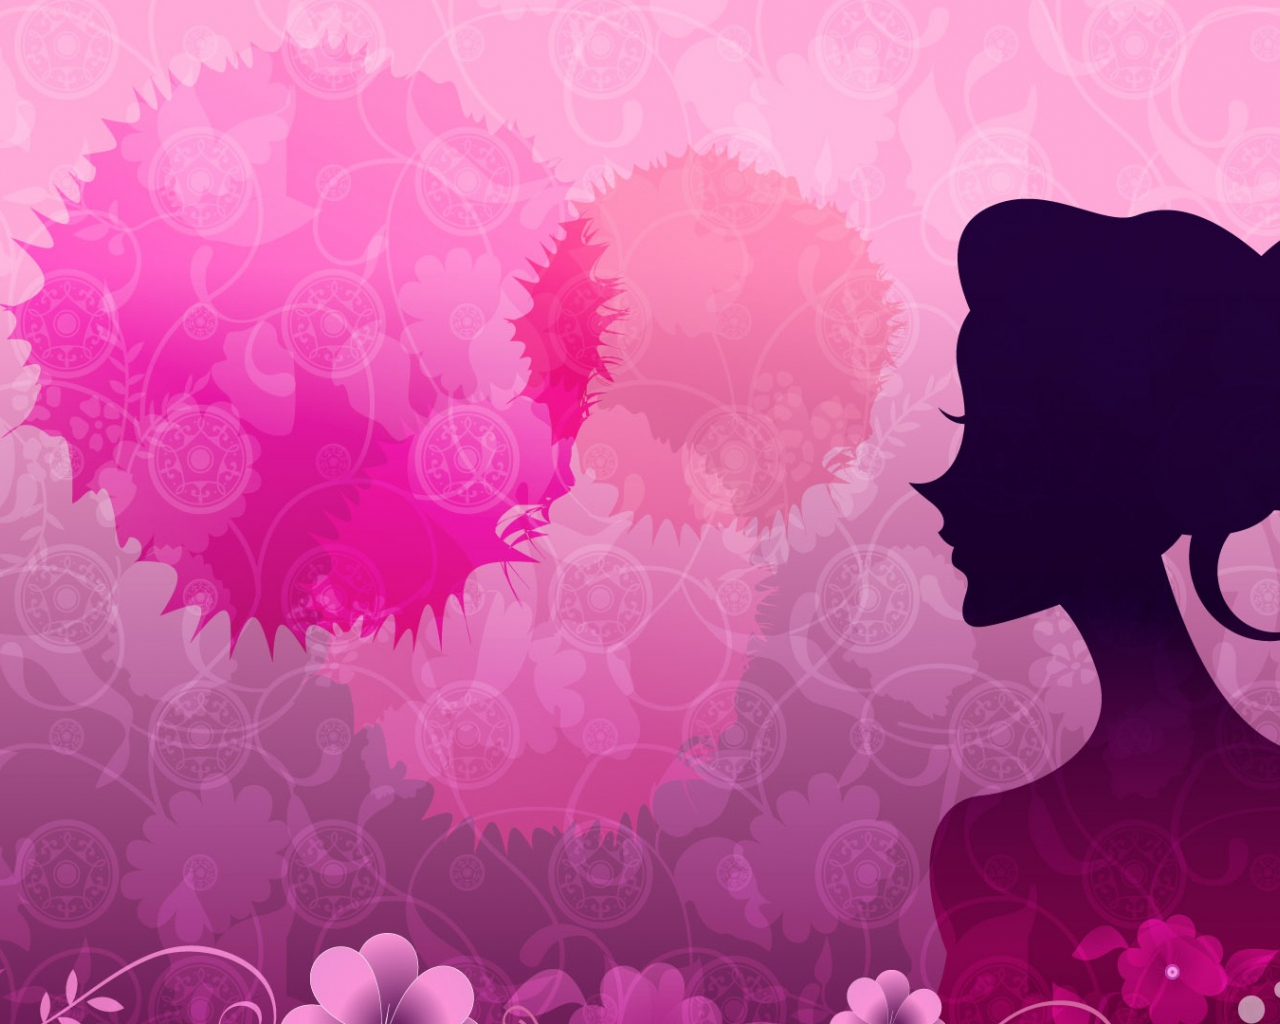 Free Download Girly Wallpapers 1920x1080 For Your Desktop Mobile